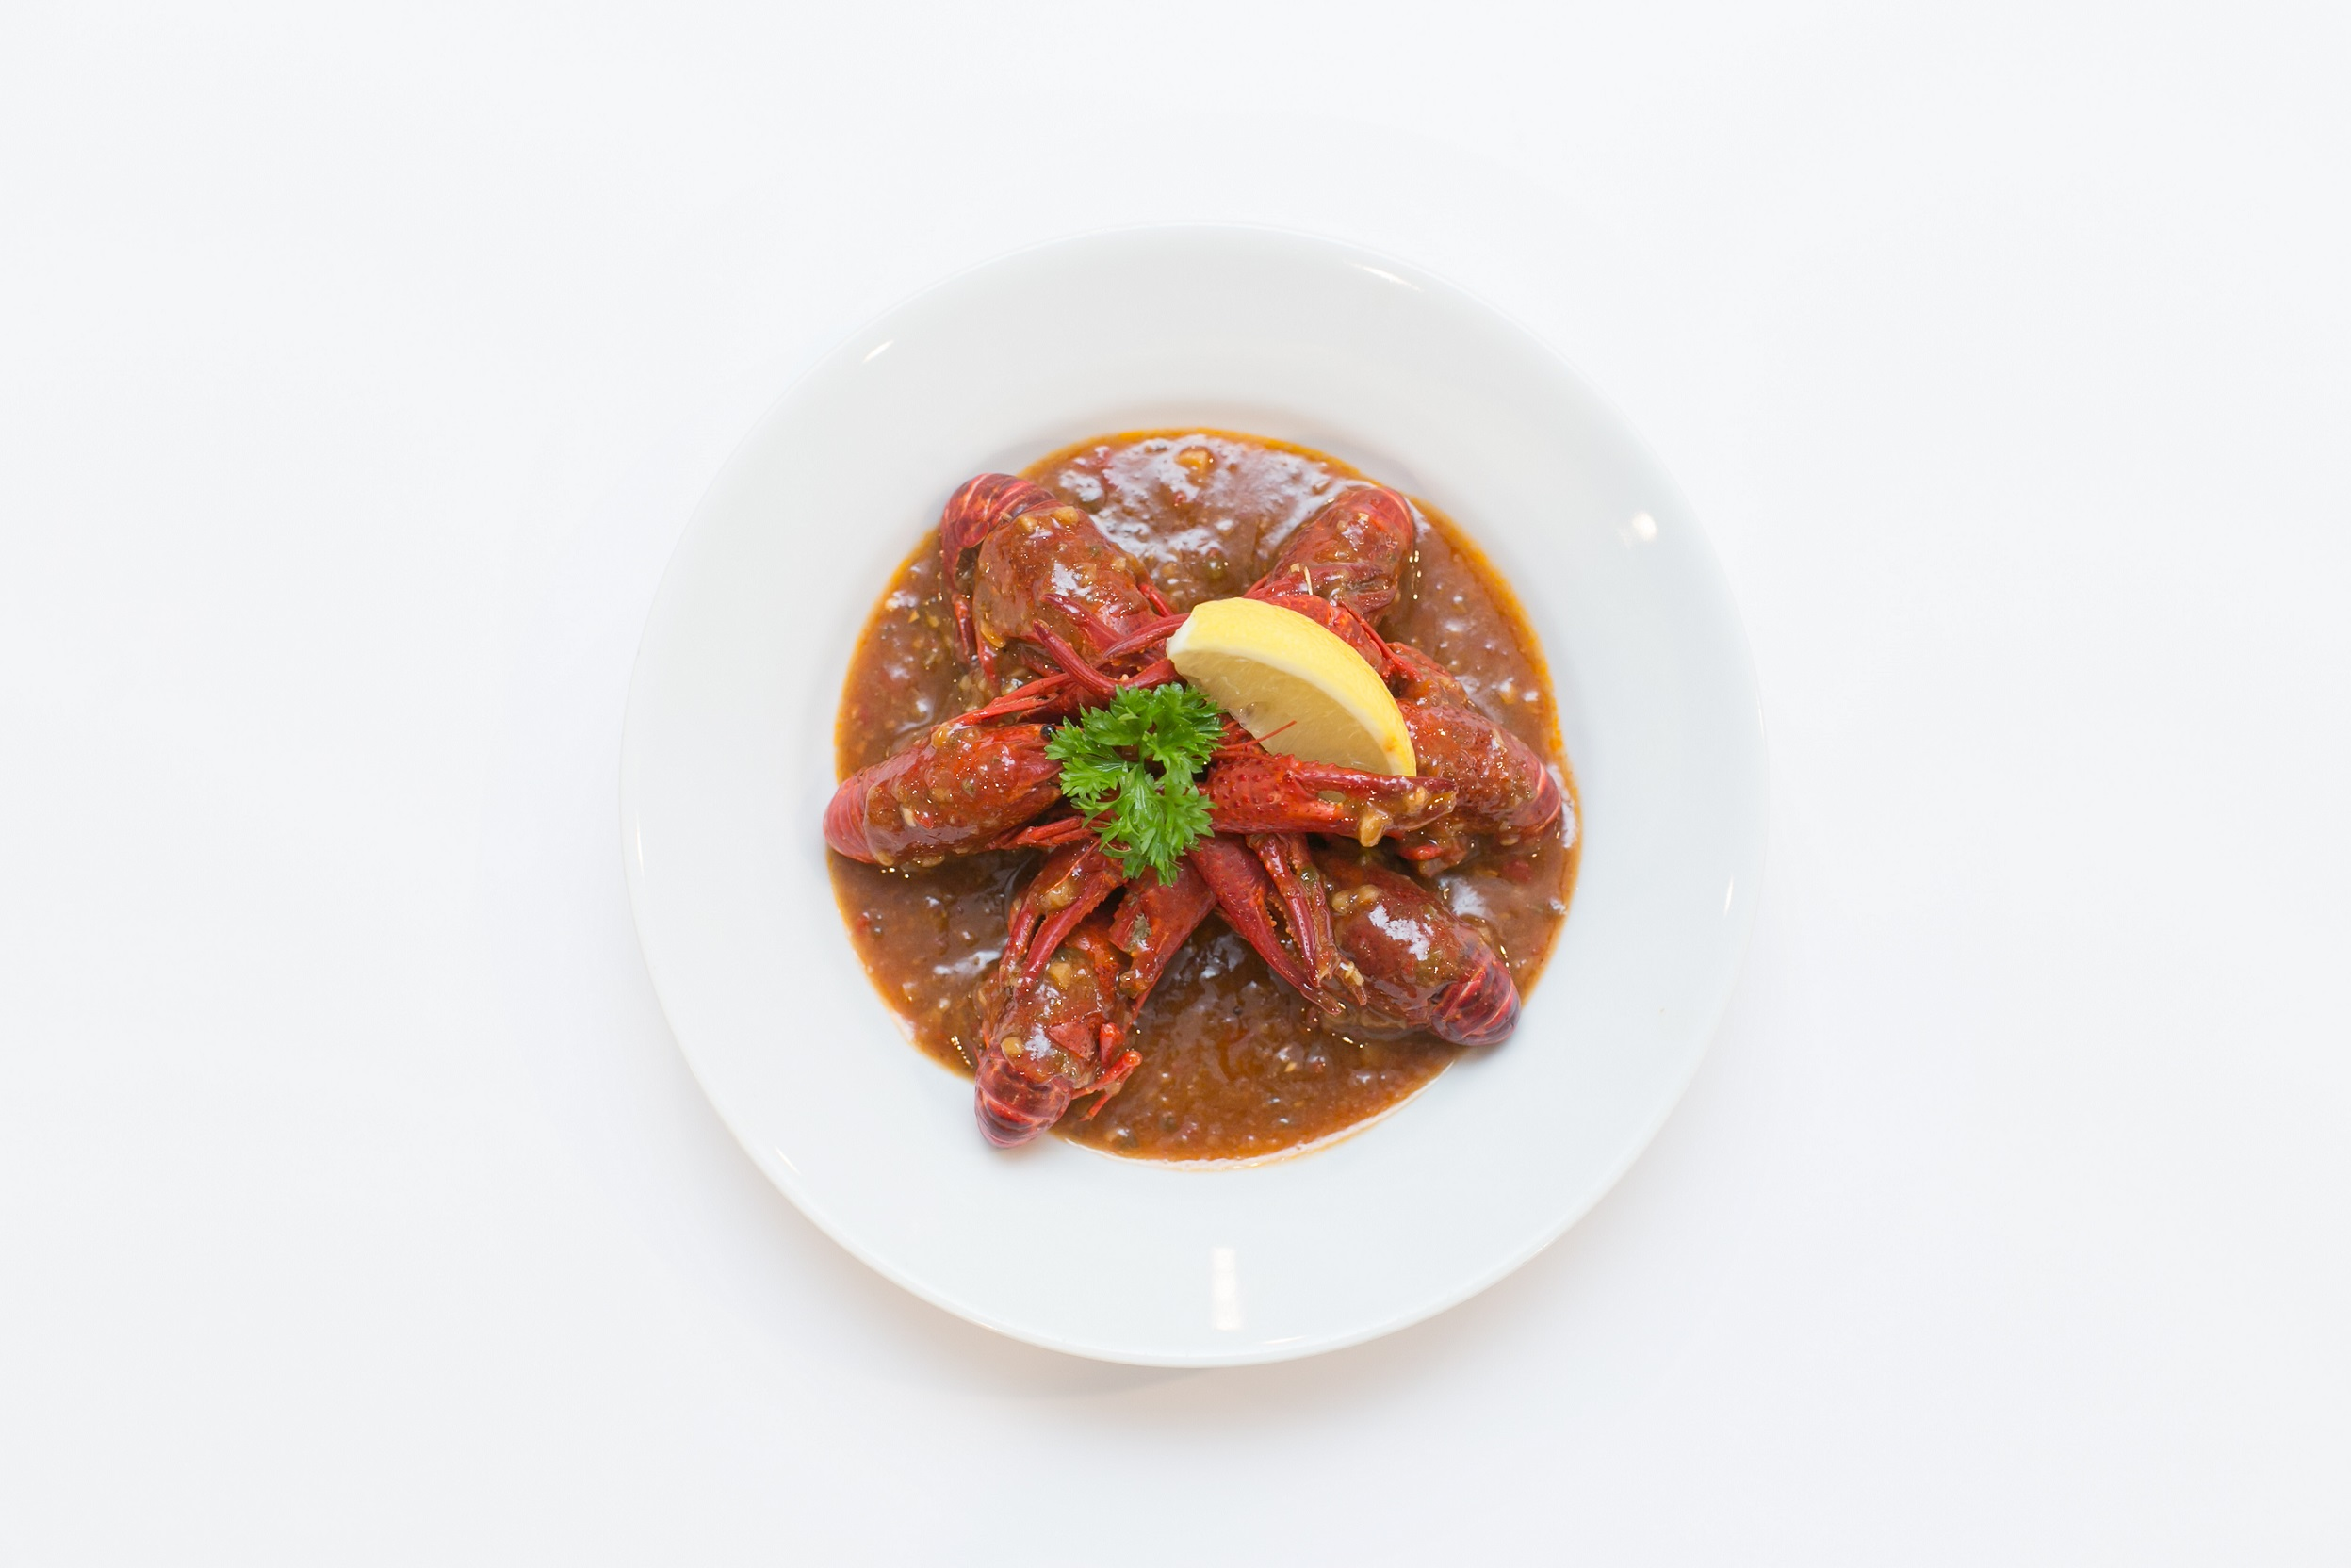 Crayfish with Spicy Tomato Sauce for RM29.90 per plate.